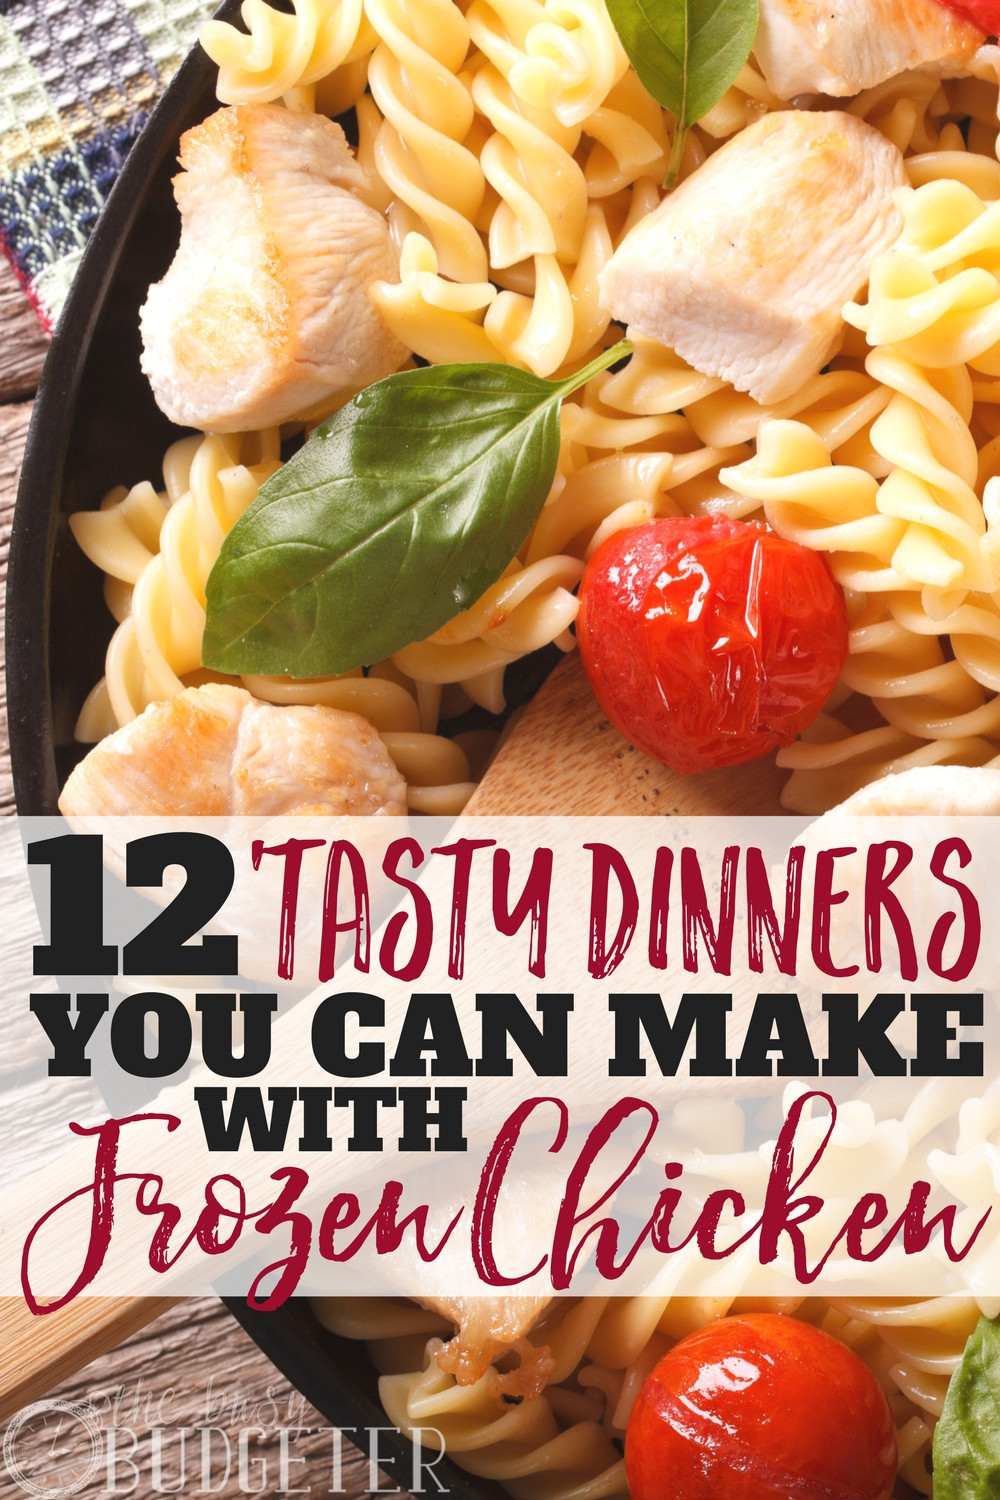 Frozen Chicken Recipes For Dinner  12 Tasty Dinners You Can Make with Frozen Pre Cooked